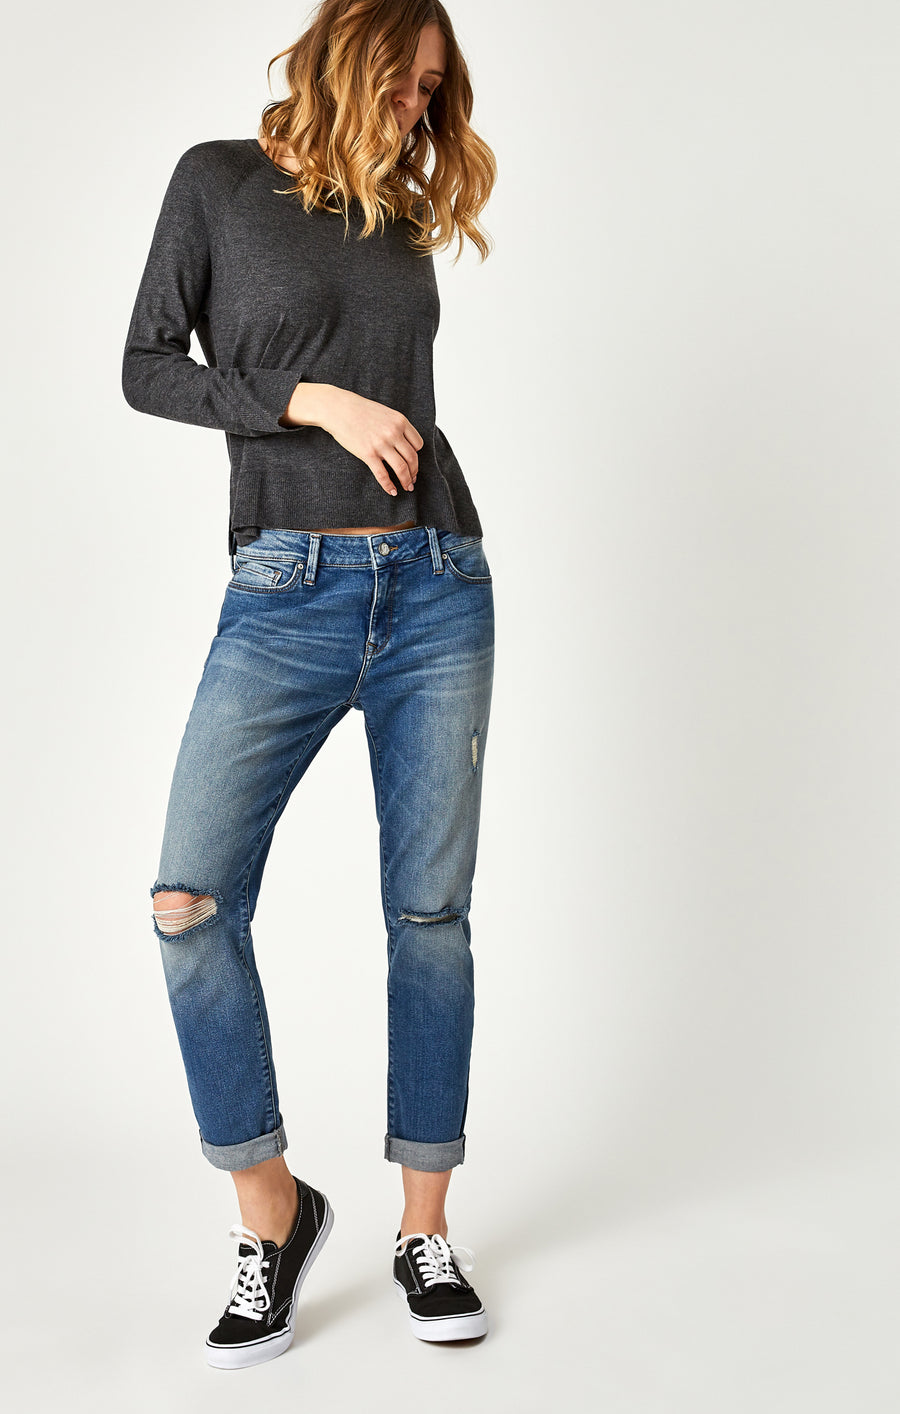 ADA BOYFRIEND JEANS IN MID SHADED 80'S VINTAGE - Mavi Jeans